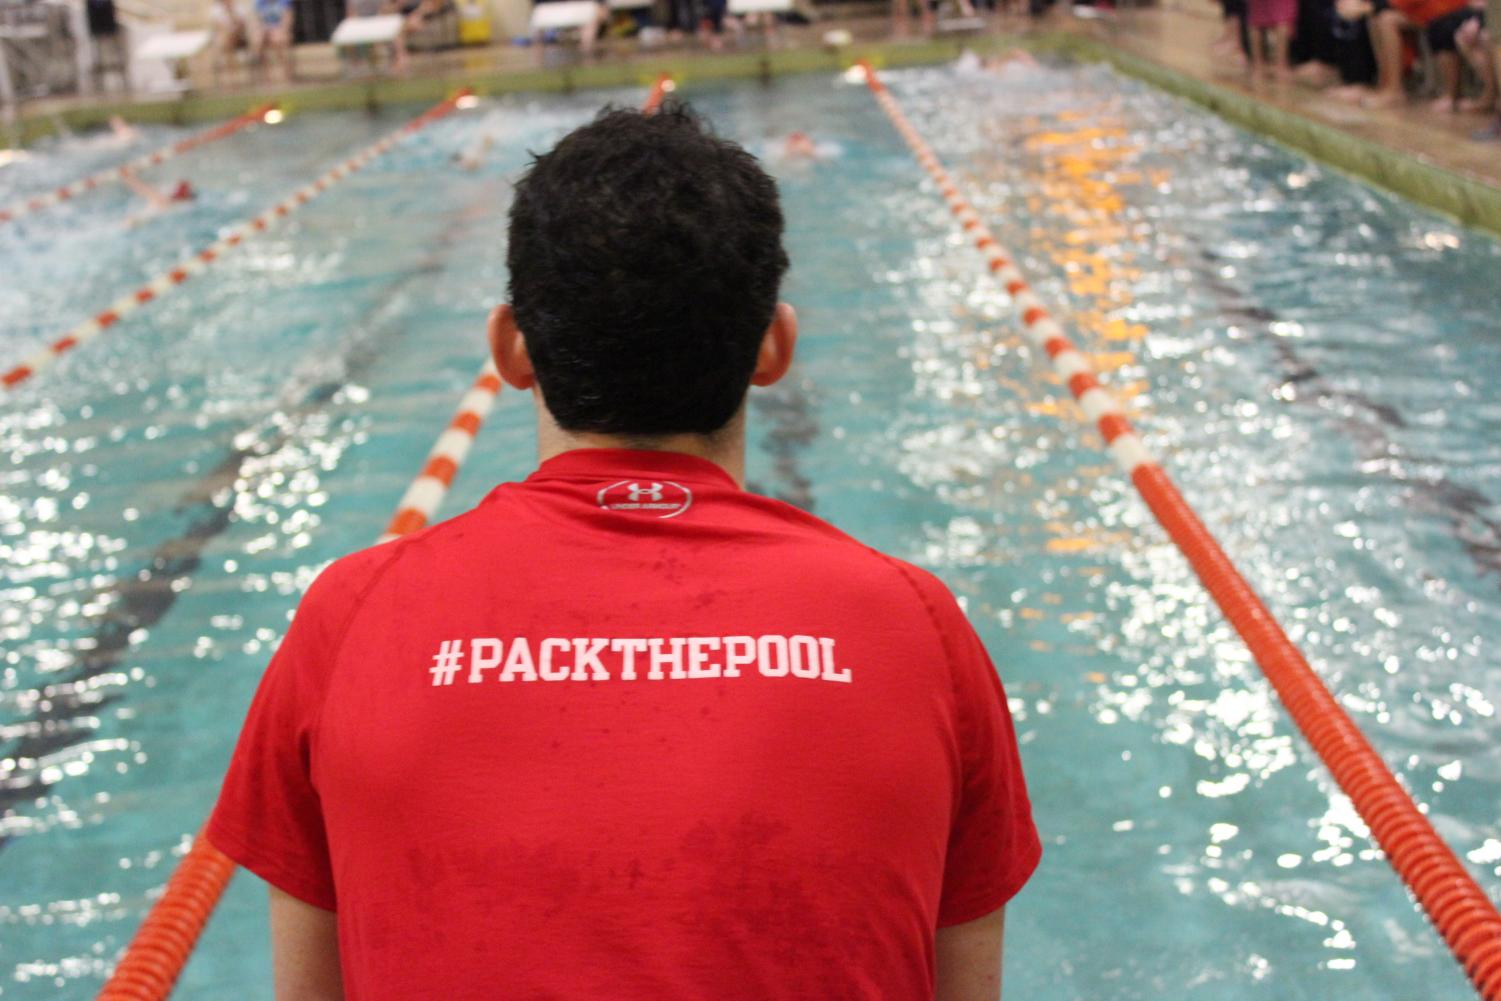 BSM boys' are ready for the upcoming season and ready for fans to #packthepool.